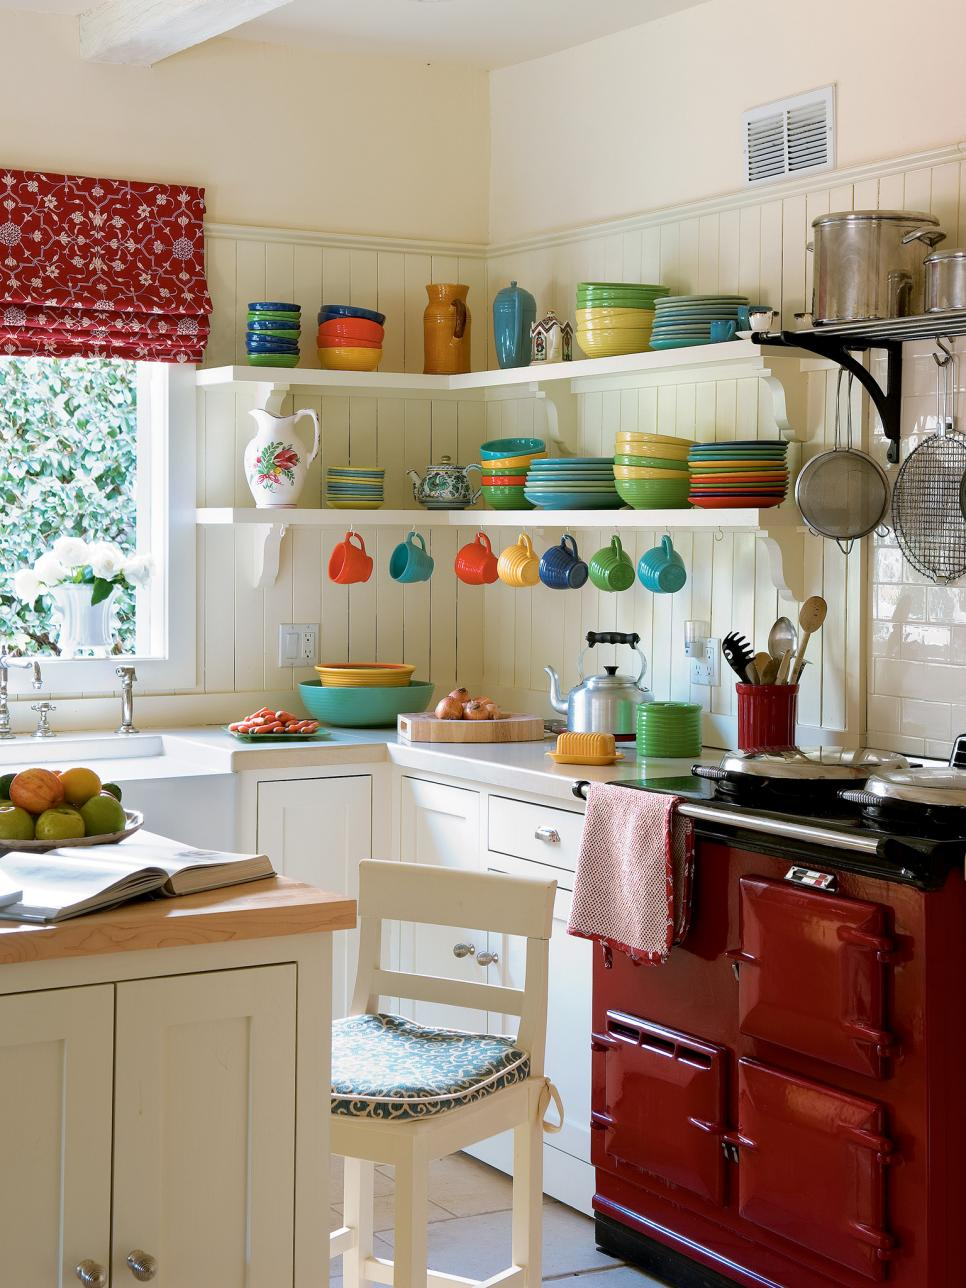 pictures of small kitchen design ideas from hgtv hgtv - Kitchen Design Ideas Images